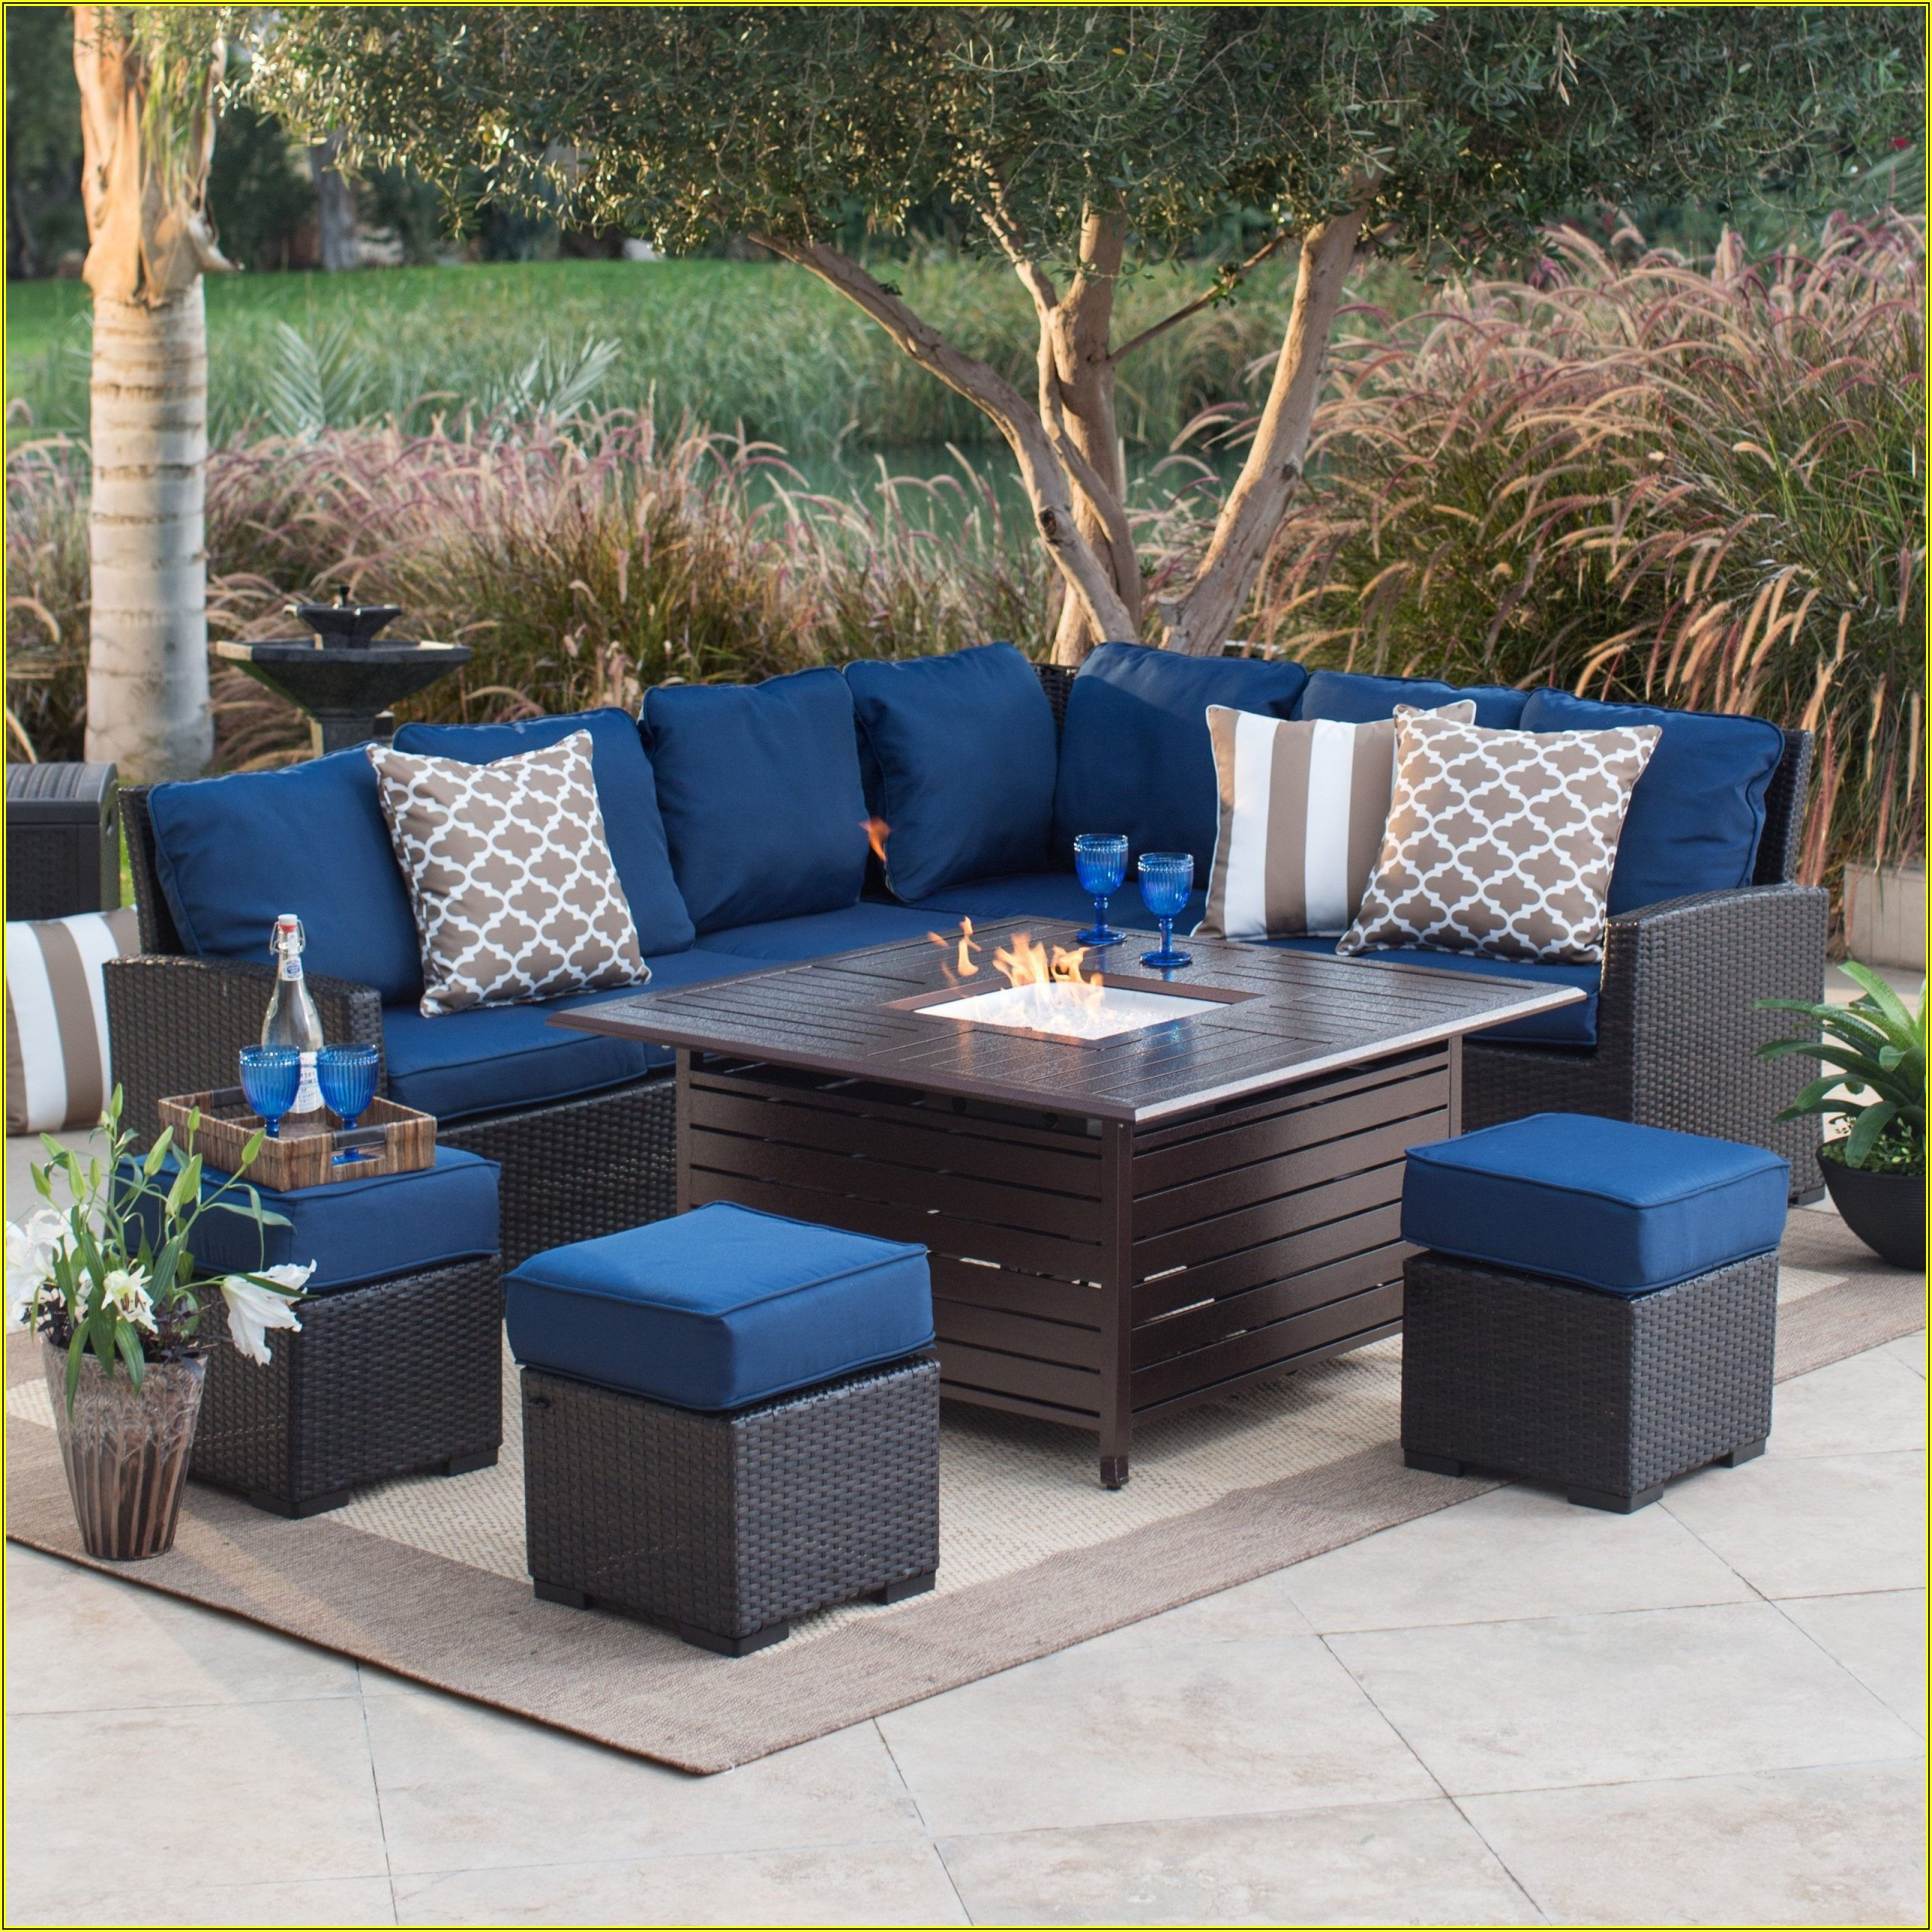 Patio Furniture With Fireplace